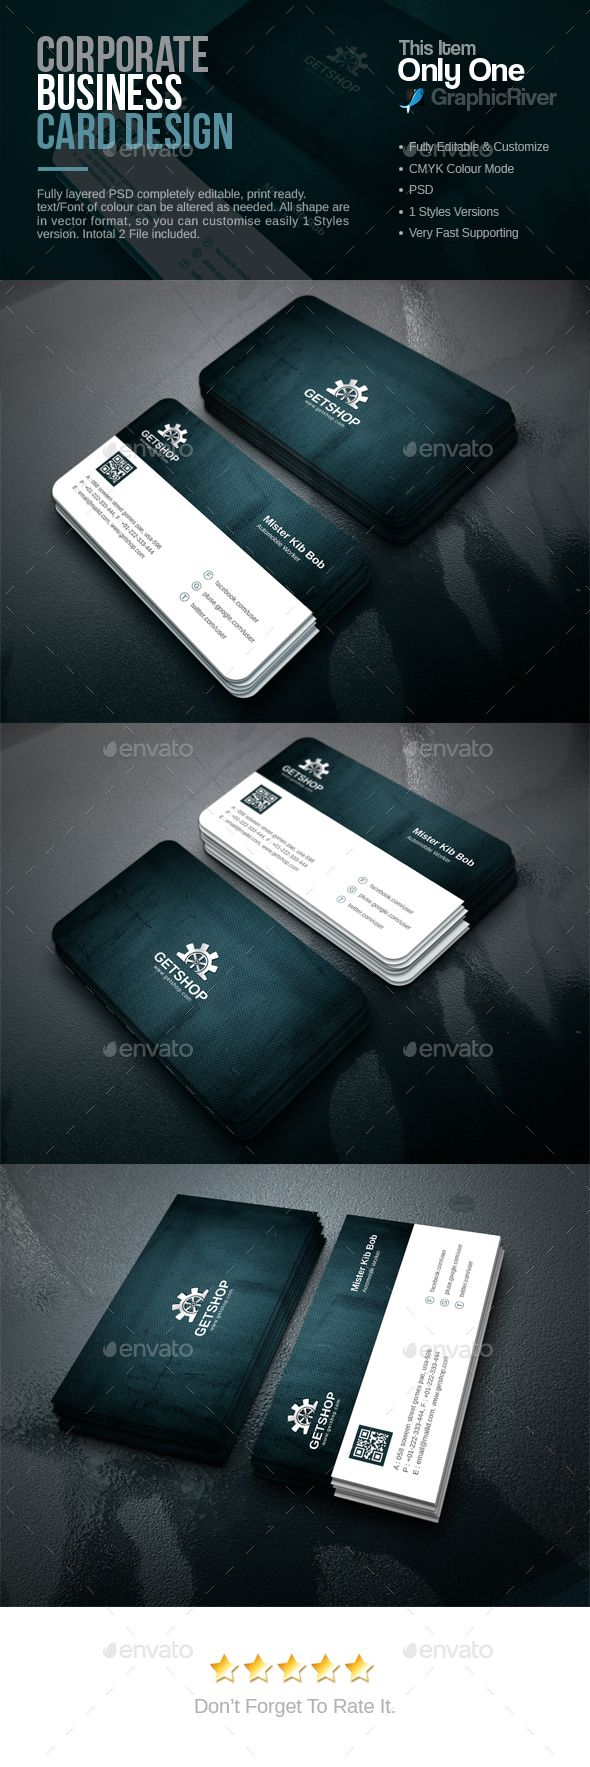 199 best buisness card images on pinterest business cards cards corporate business card by artbeta file information this file open is programs cc cc its item minimum adobe photoshop open and a magicingreecefo Images